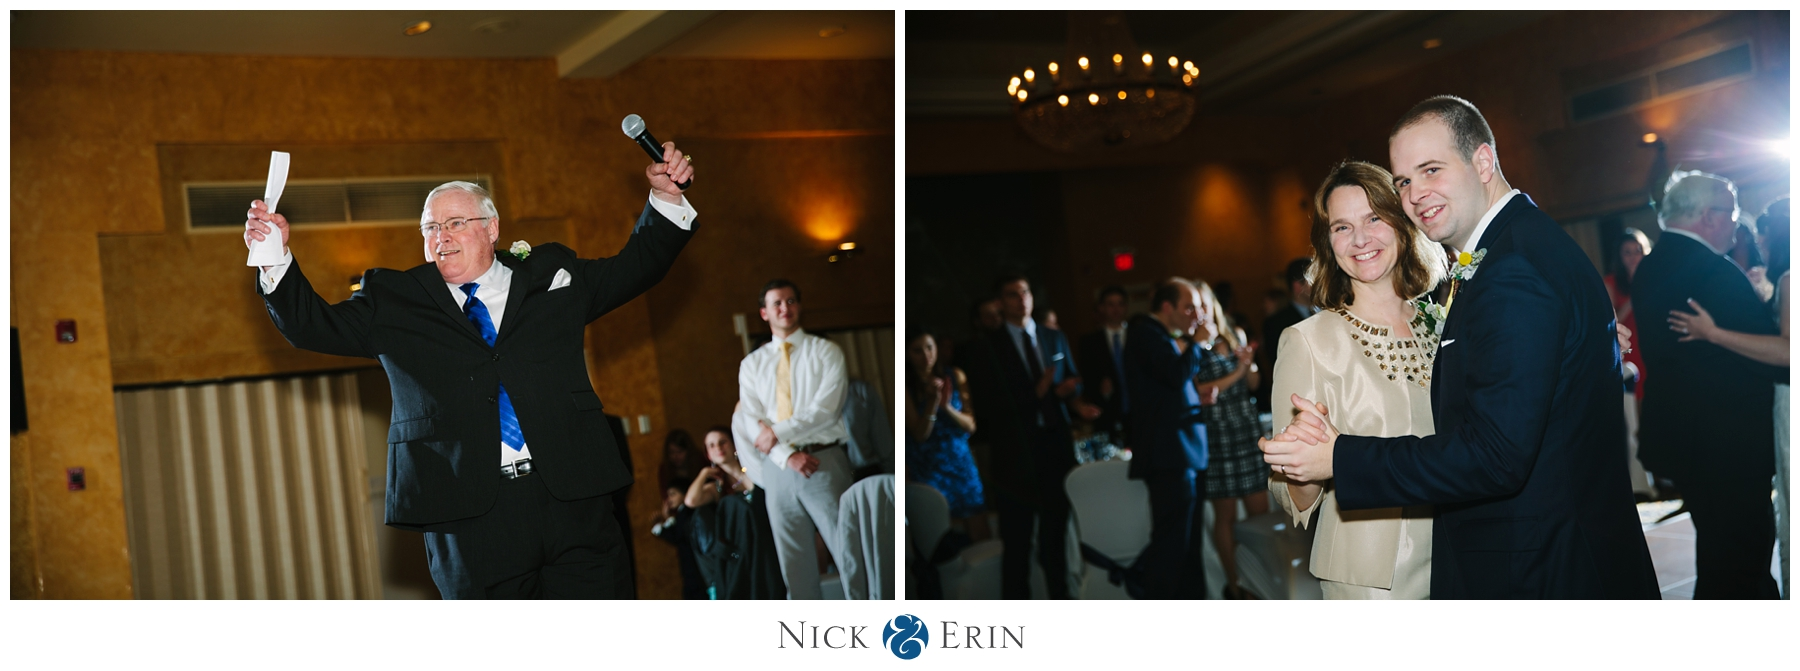 Donner_Photography_Fort Myer Wedding_Katie & Will_0044